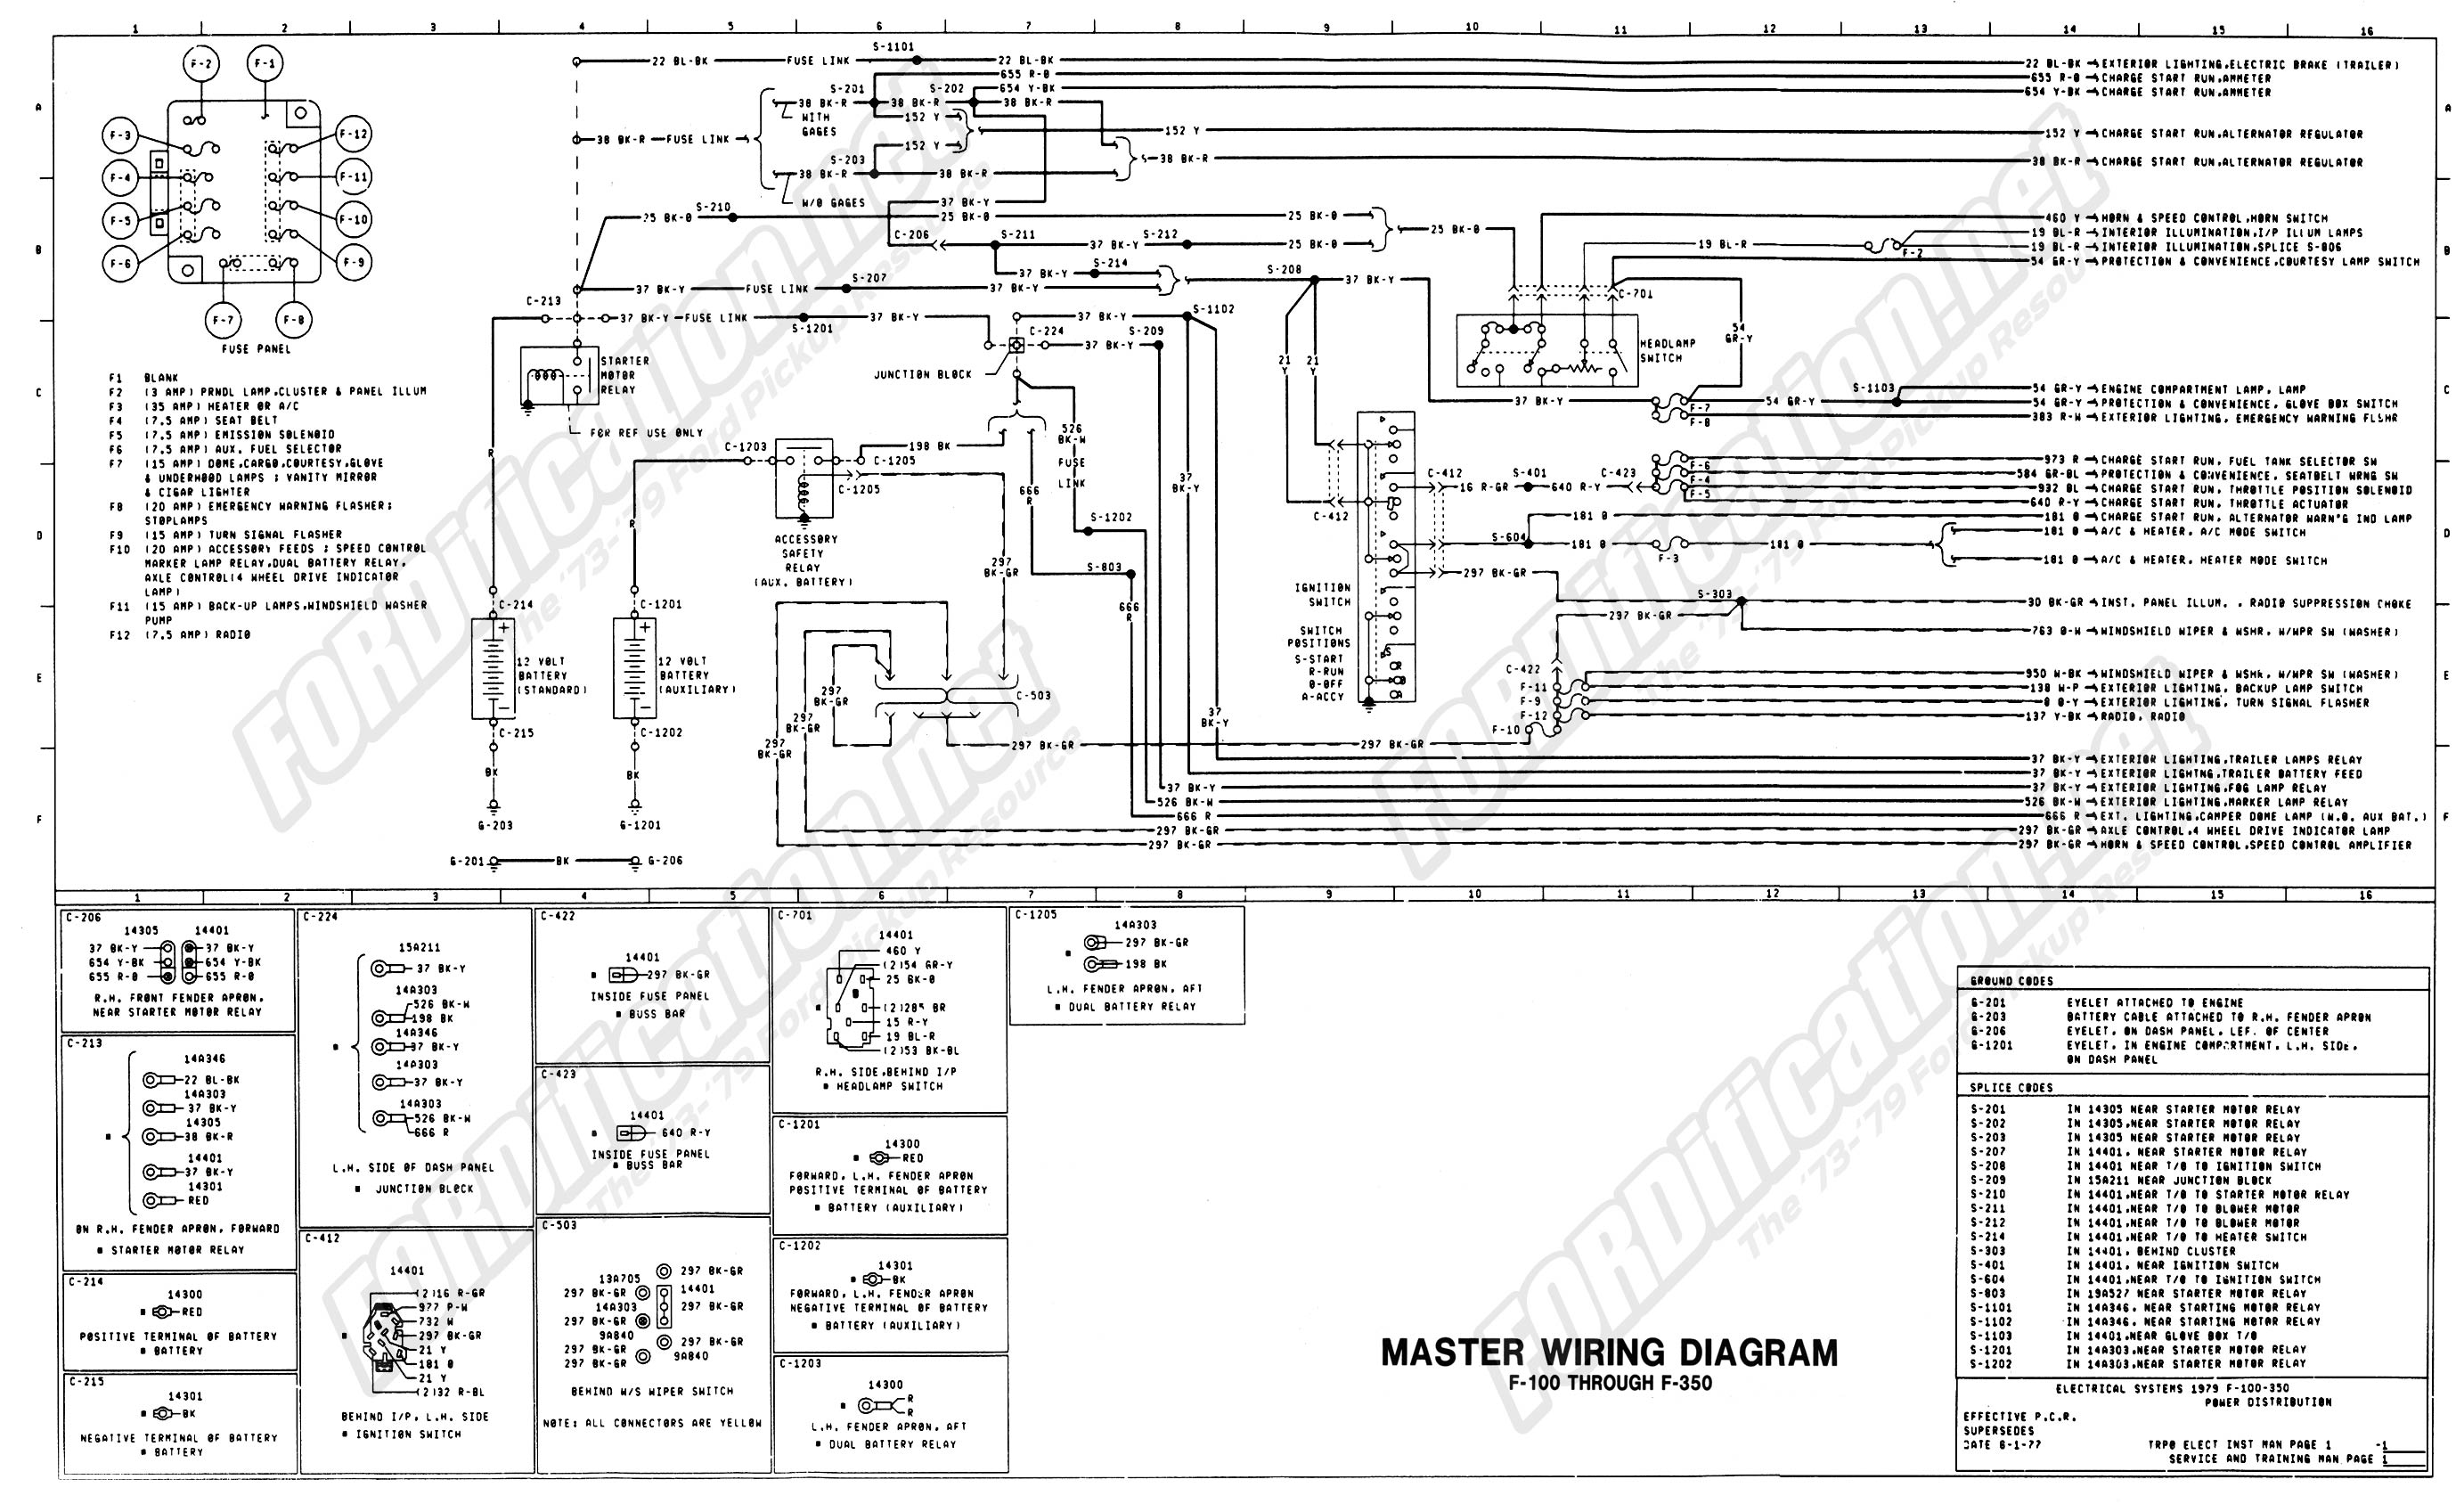 wiring diagram for 2006 ford f150